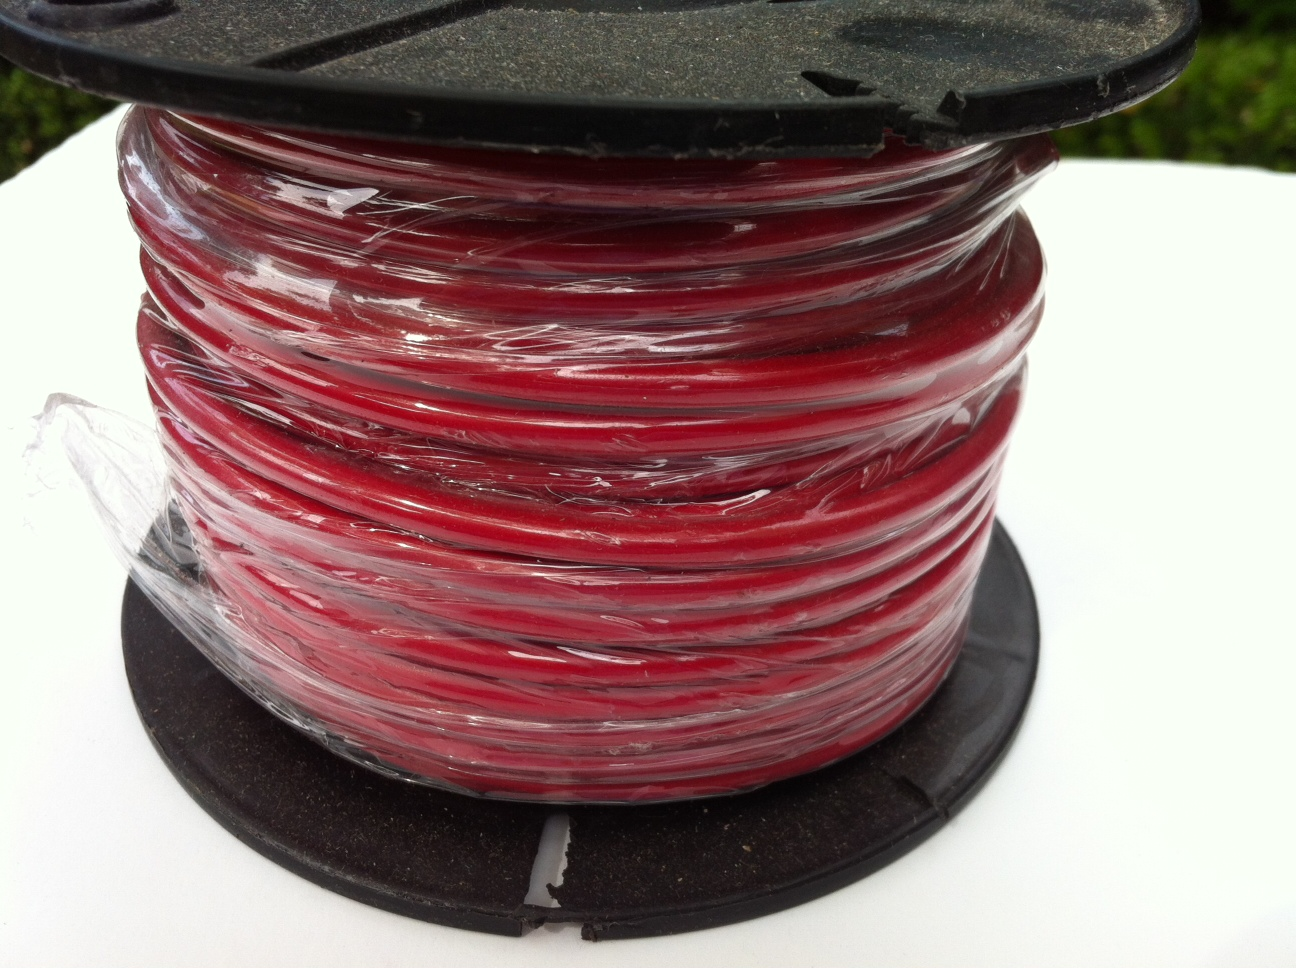 5mm red electrical wire 30M spool :: Wire :: Parts 4 Cars